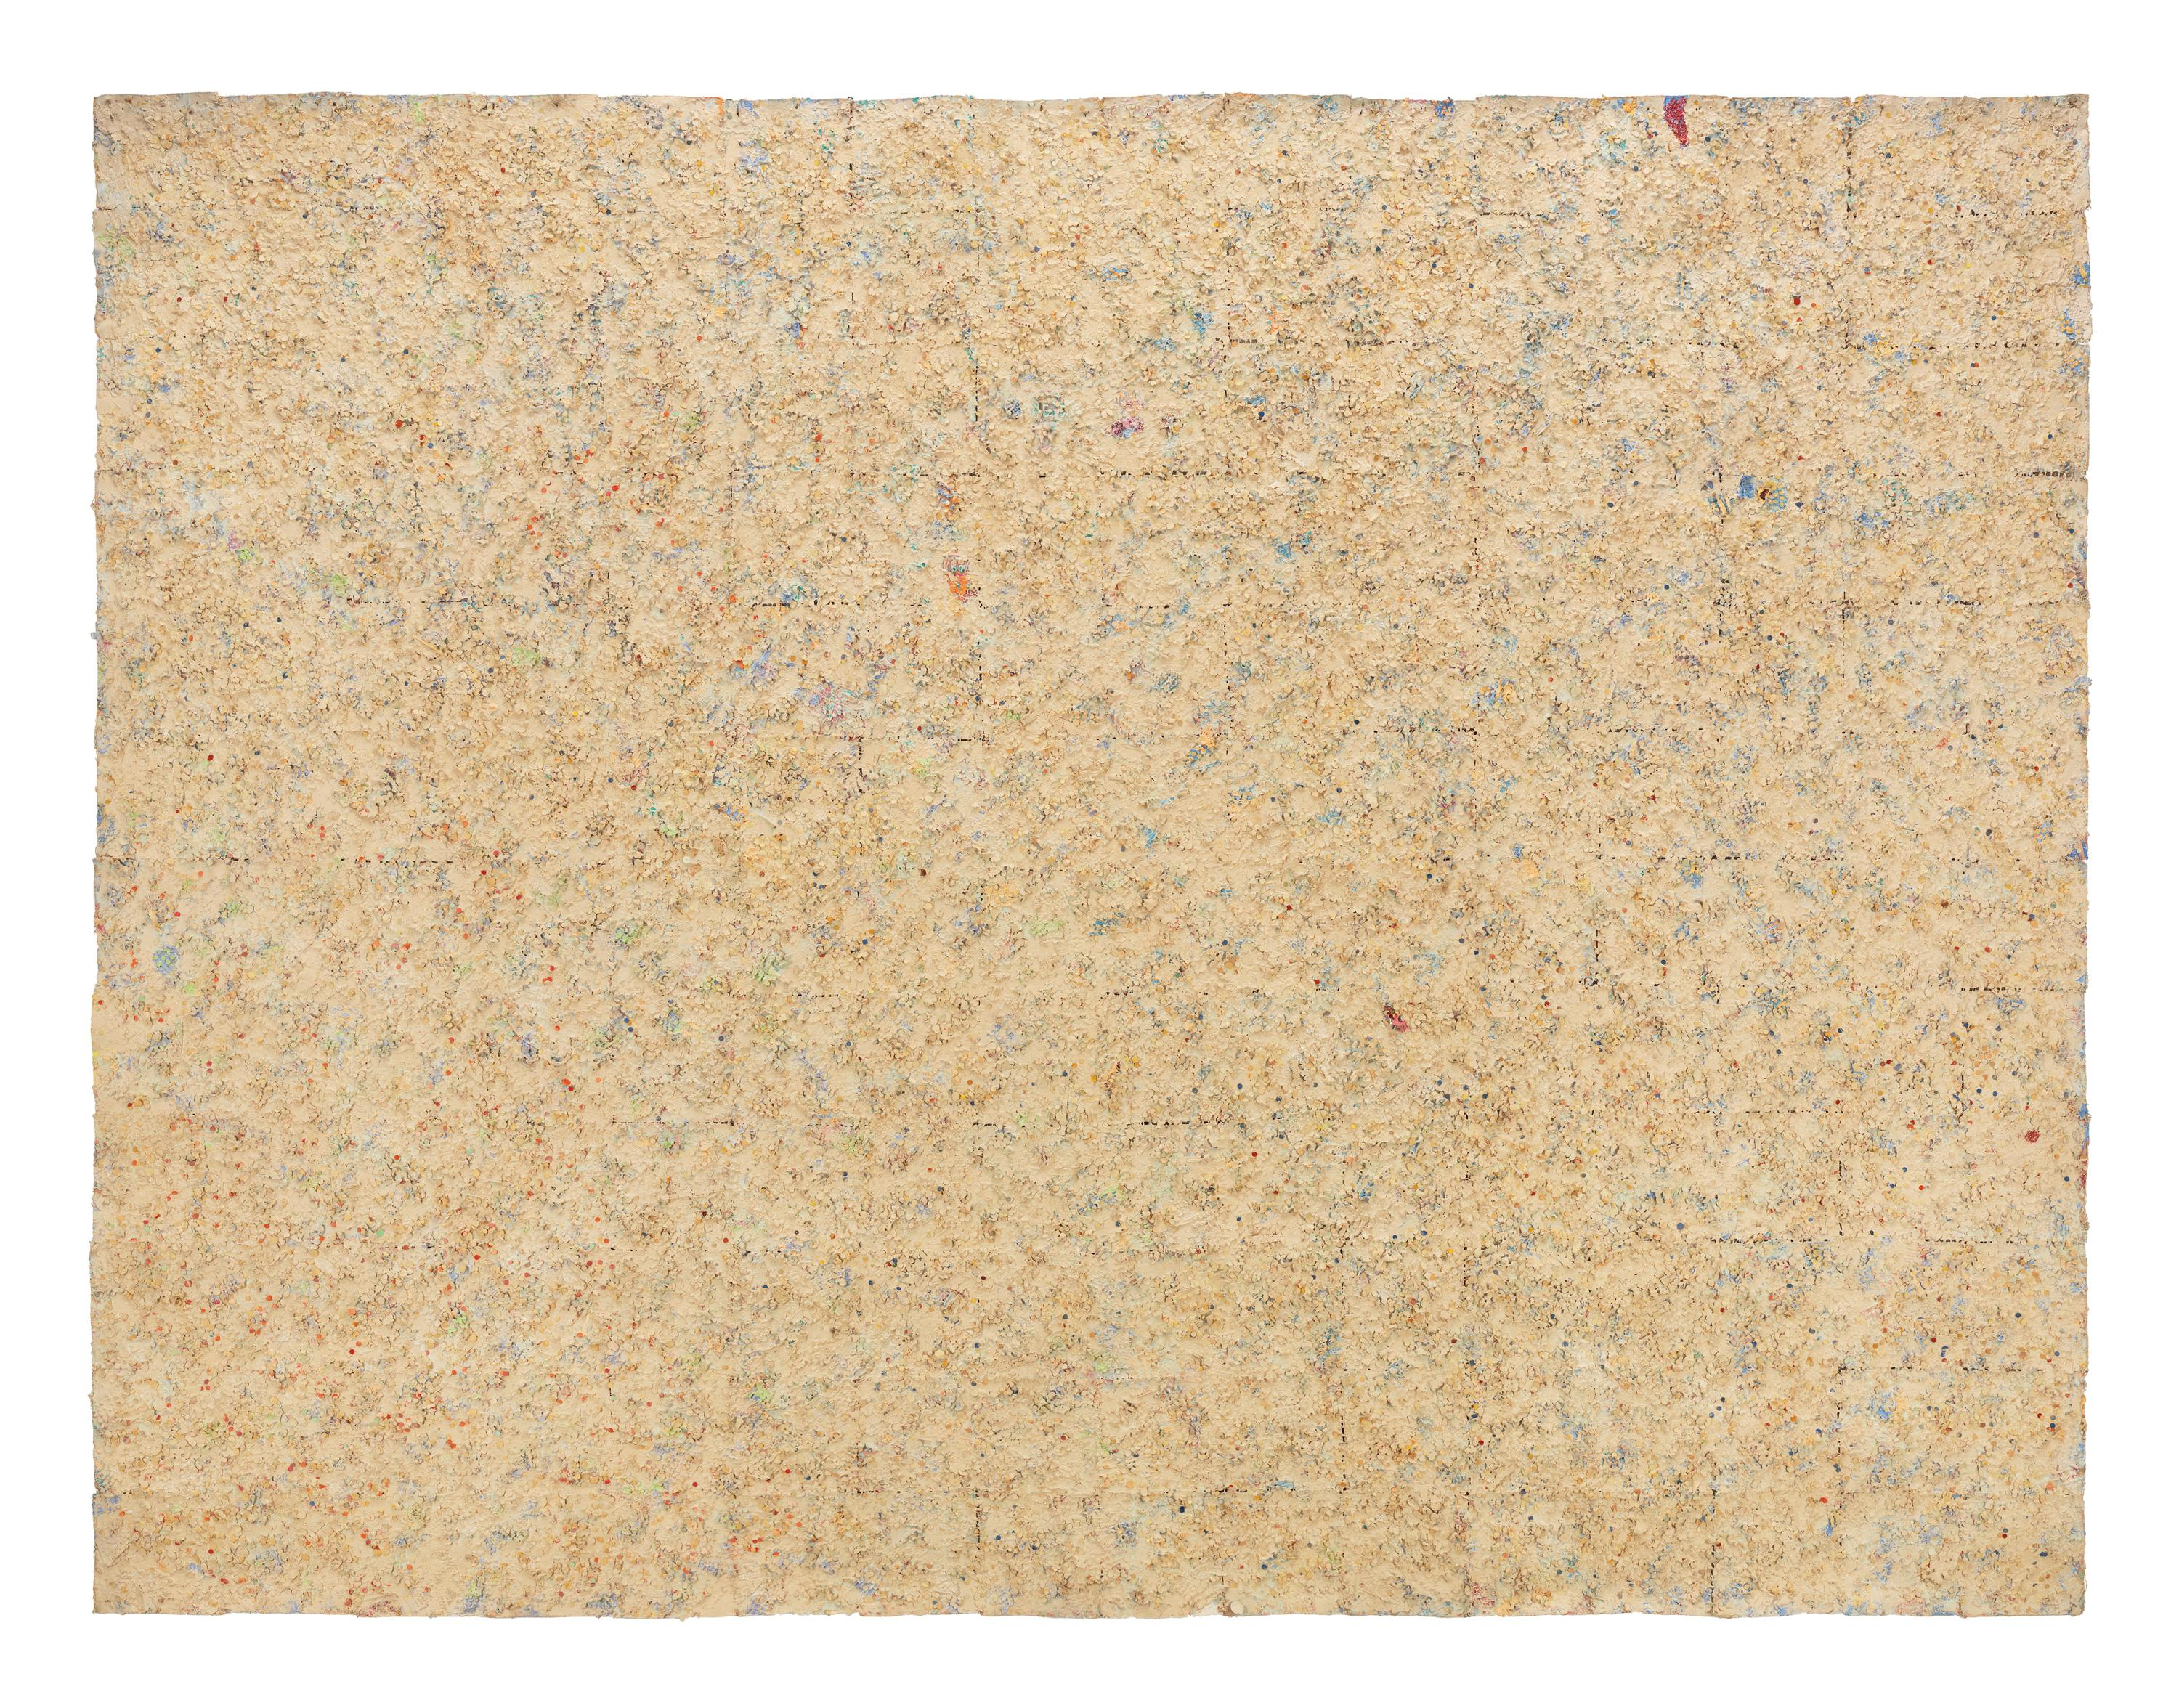 A rectangular, primarily beige surface is mottled with many other small areas of color, including light blue, light purple, light green, orange, and crimson.